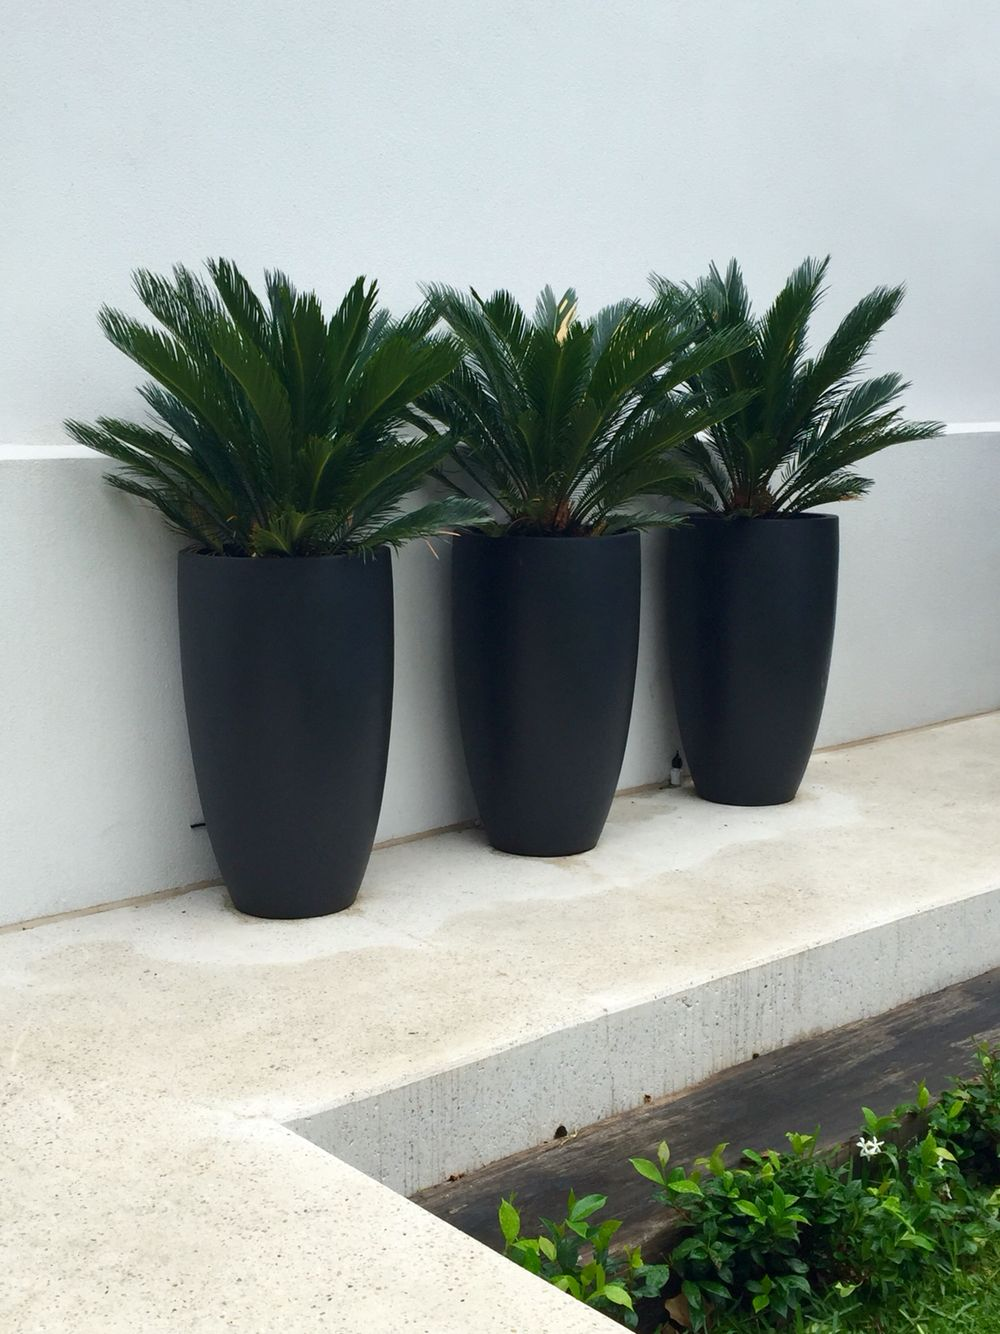 Planters Tall Matt Black Planters With Cycads Nadia Gill